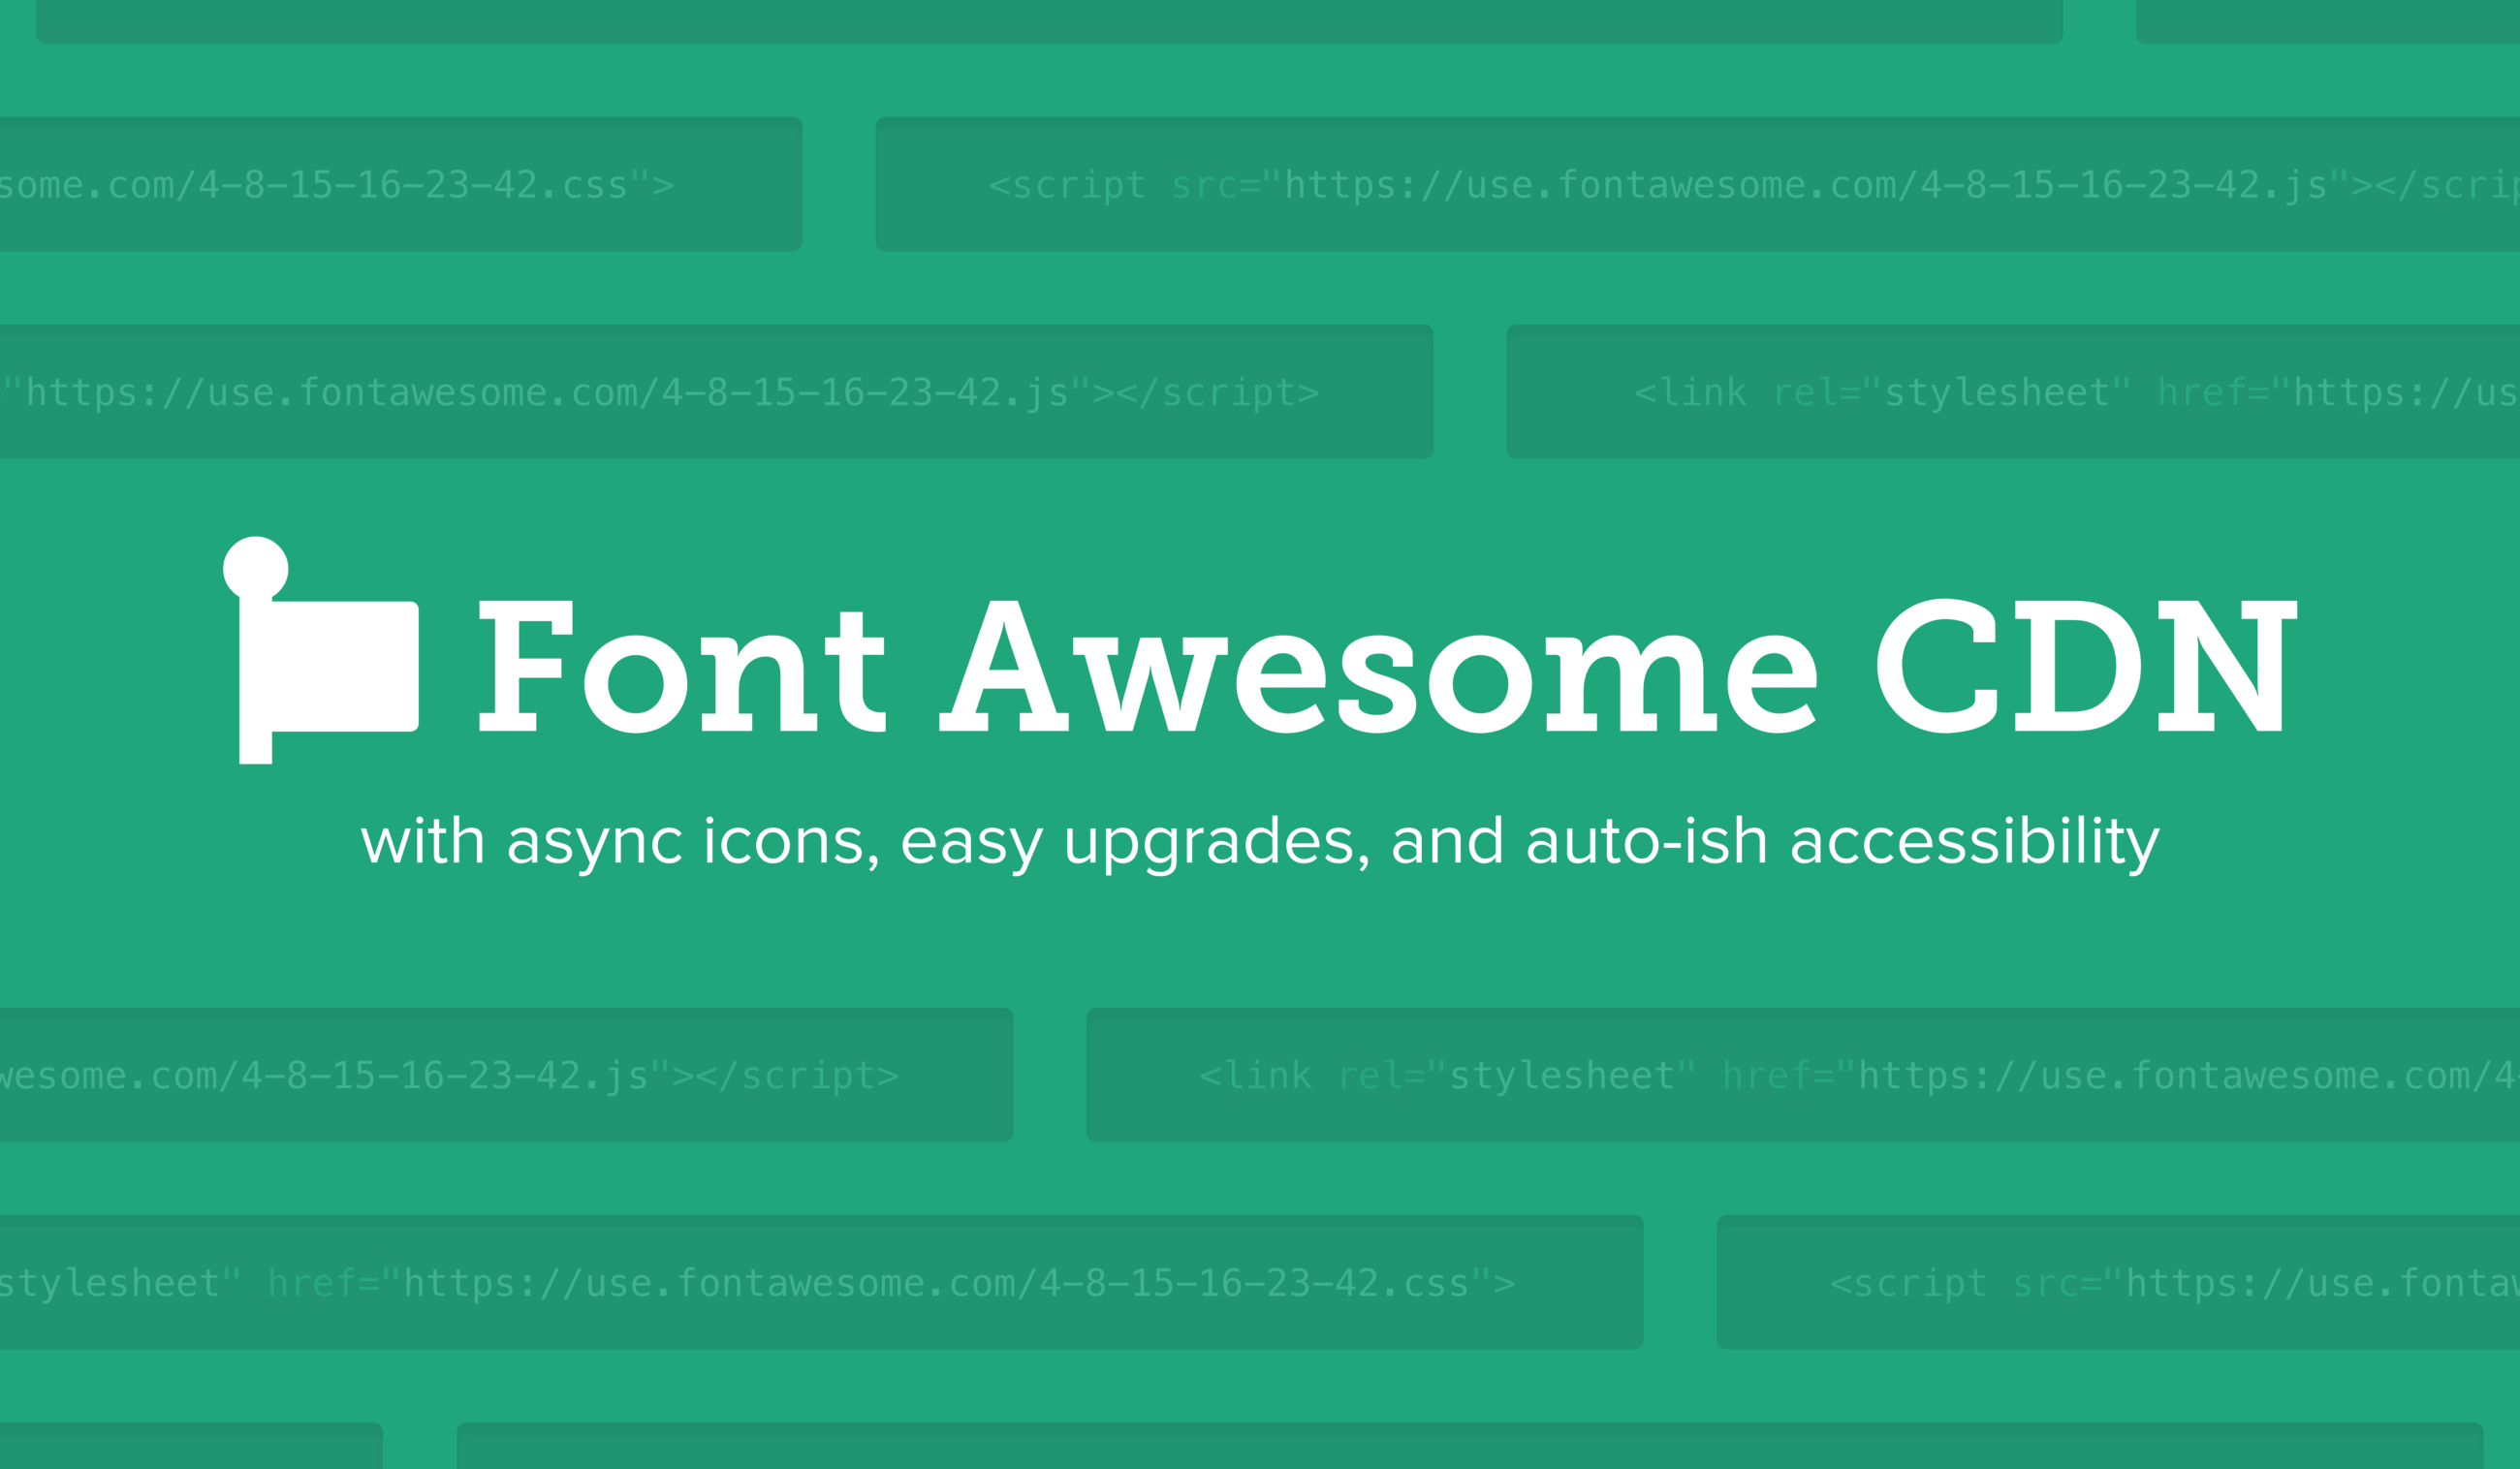 Announcing Font Awesome CDN – Font Awesomeness